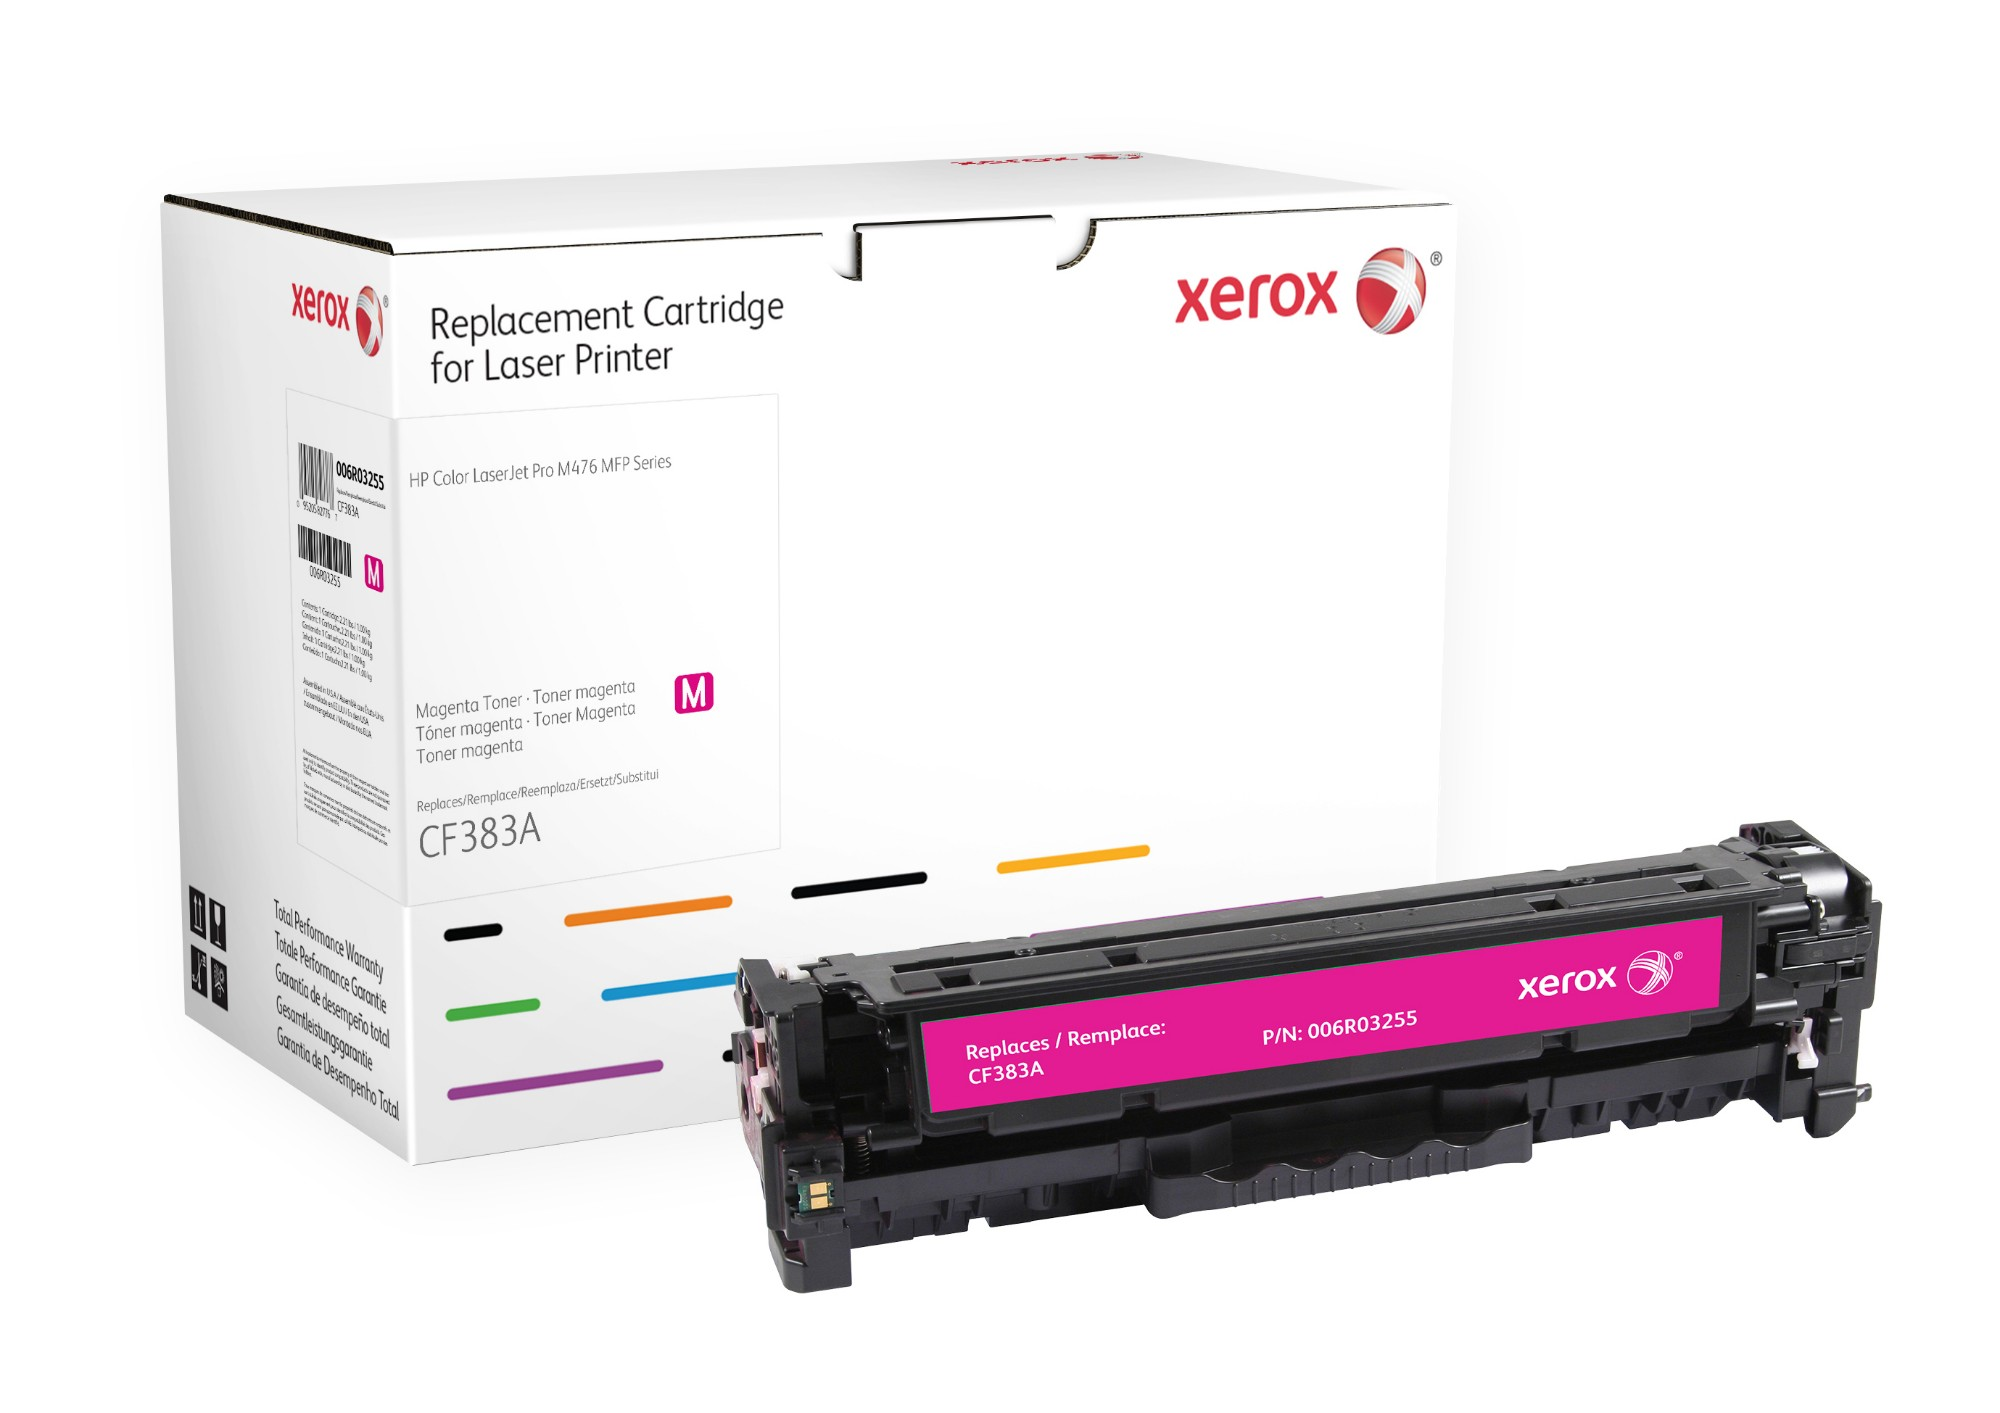 Xerox 006R03255 compatible Toner magenta, 2.7K pages (replaces HP 312A)